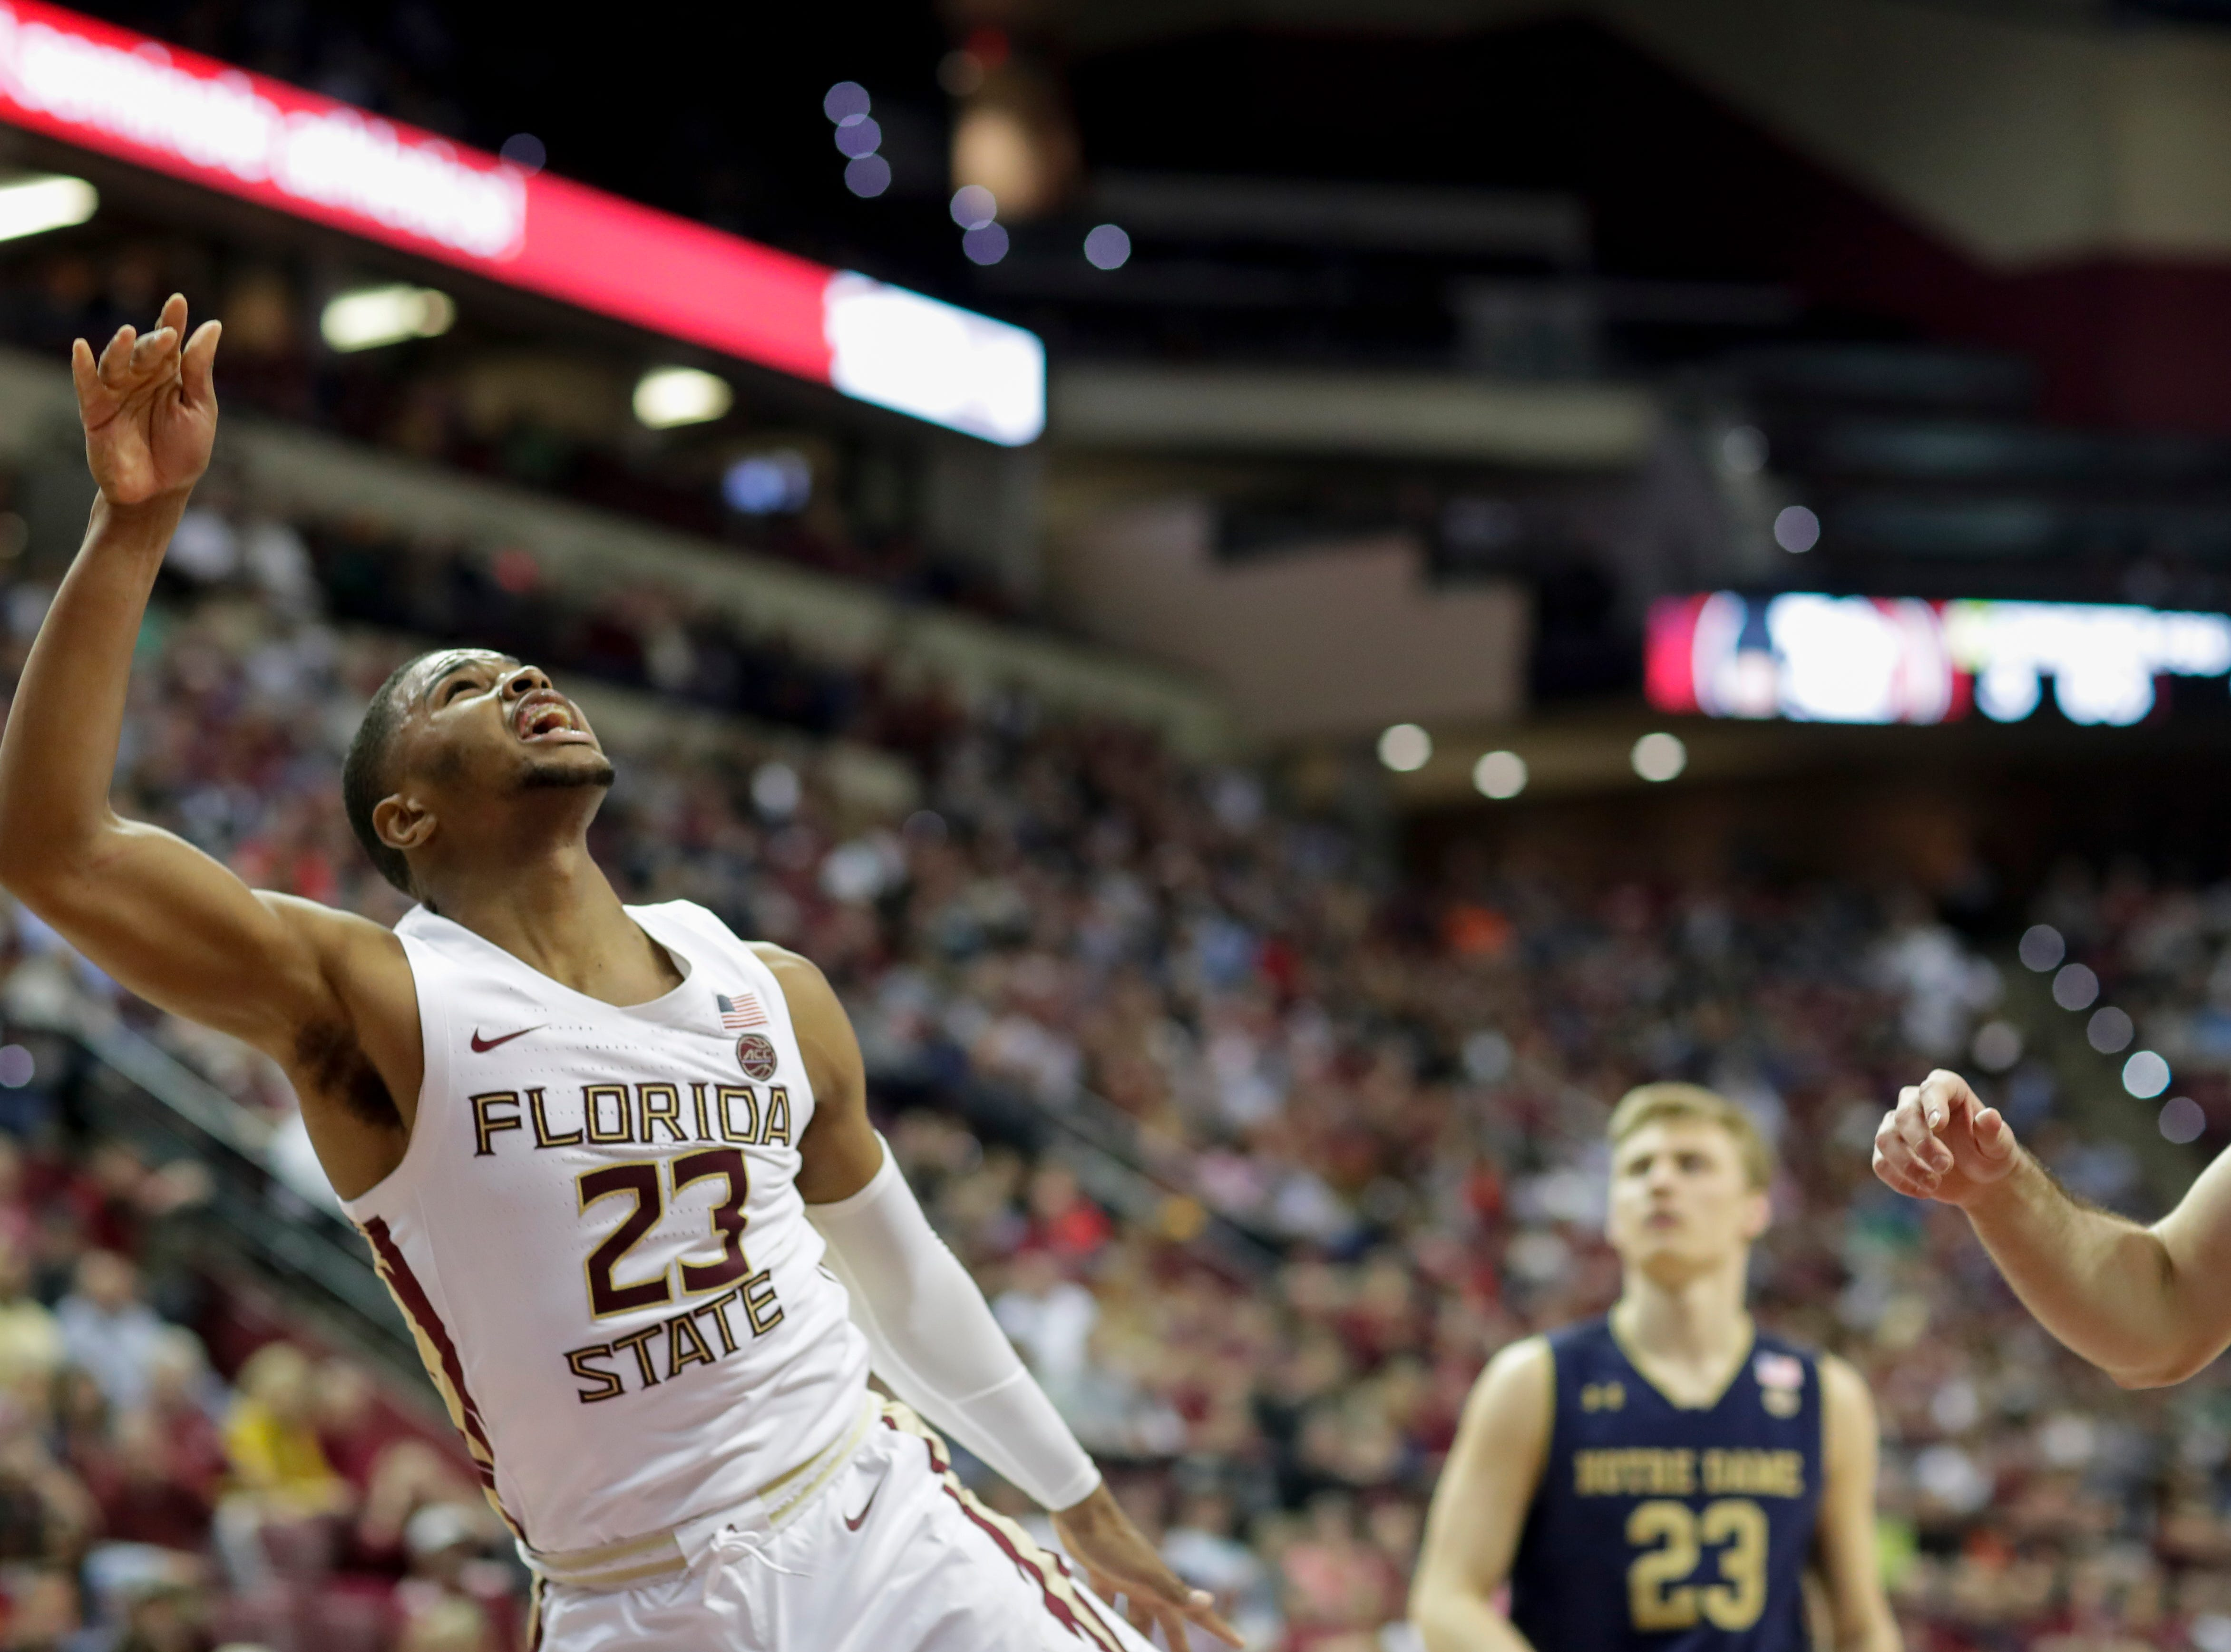 Florida State Seminoles guard M.J. Walker (23) watches his shot during a game between FSU and Notre Dame at the Donald L. Tucker Civic Center Monday, Feb. 25, 2019.